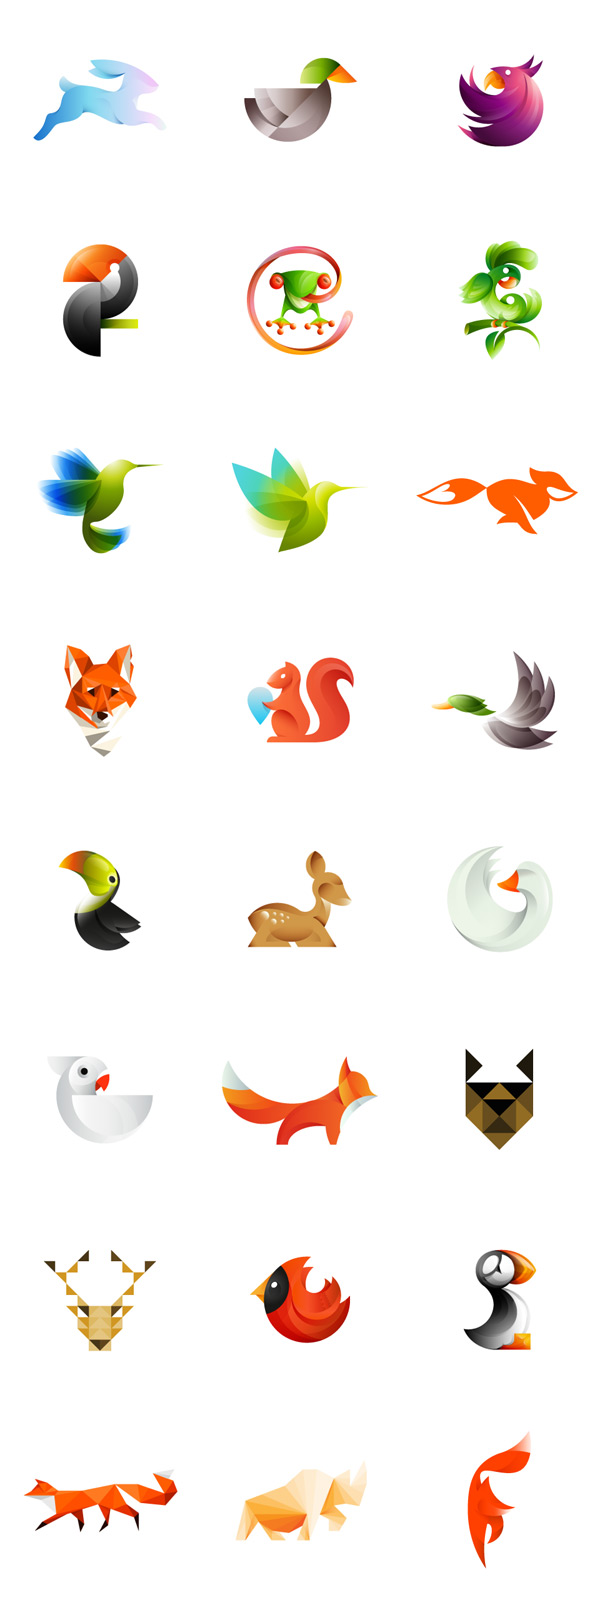 Colorful animal logos created by Ivan Bobrov, a Barnaul, Russian Federation based logo designer. The set consists of differently illustrated birds, foxes, a deer, a frog, and other lovely designed animals.